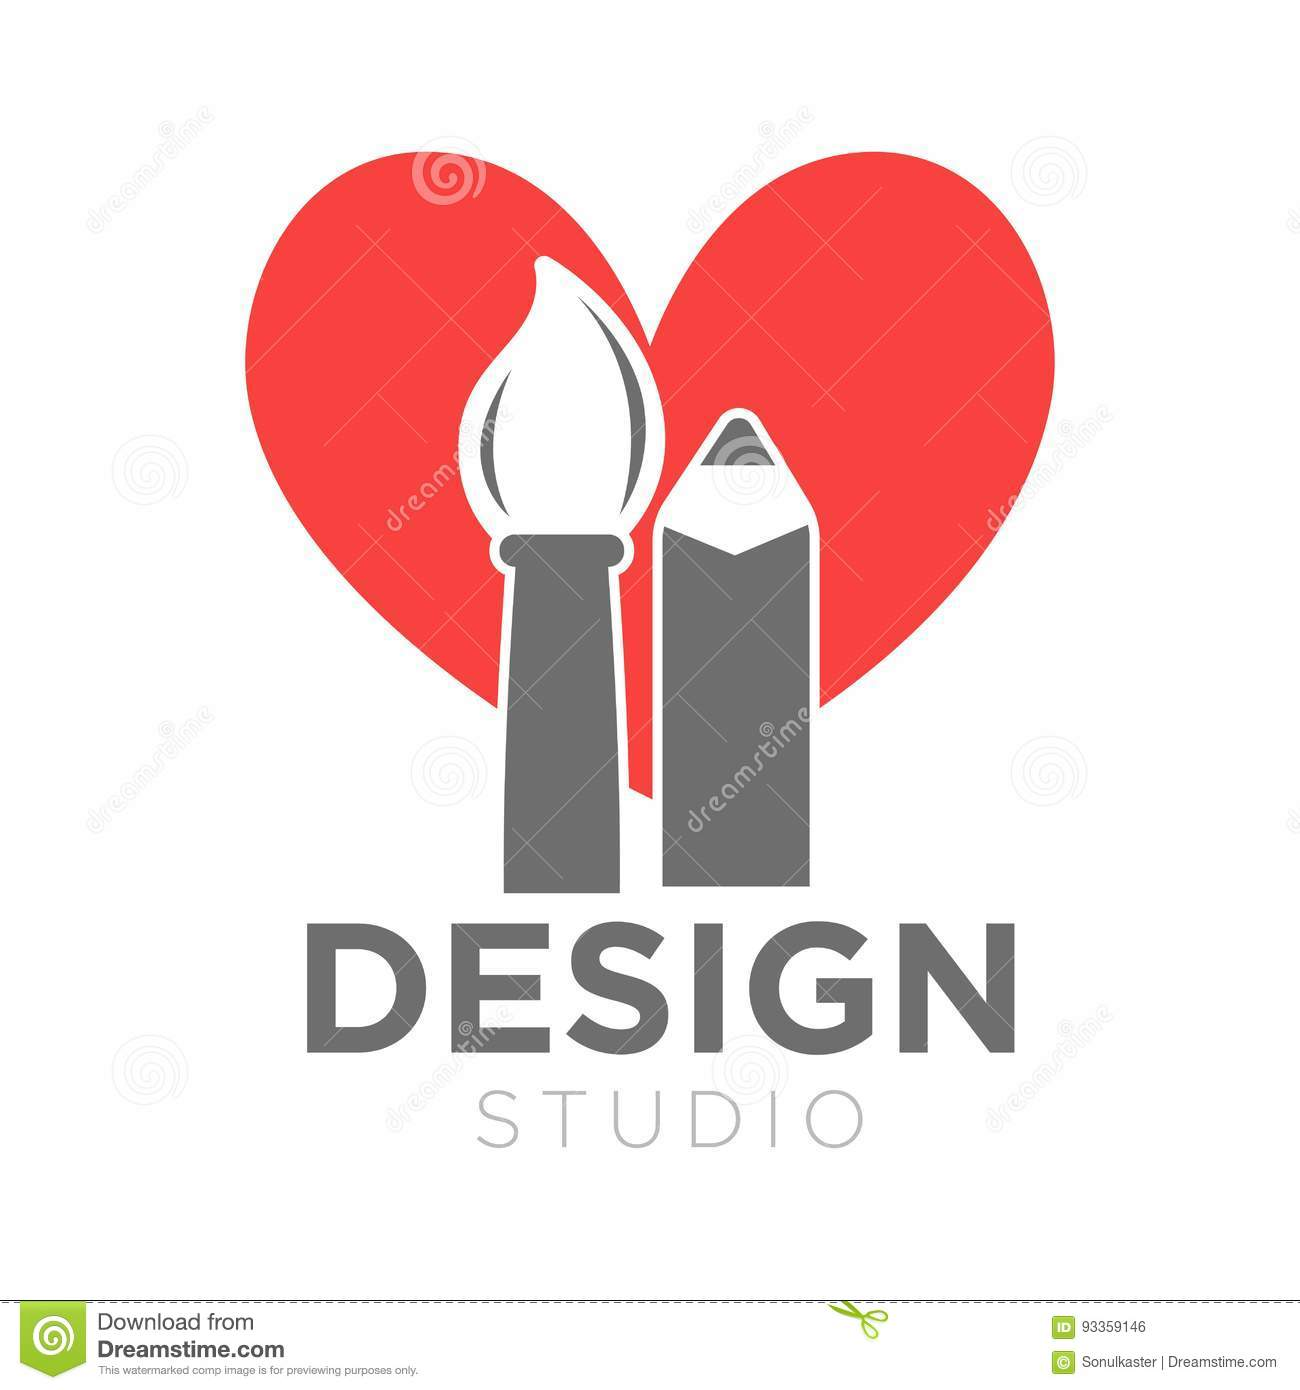 design studio vector icon template of paintbrush and pencil on heart